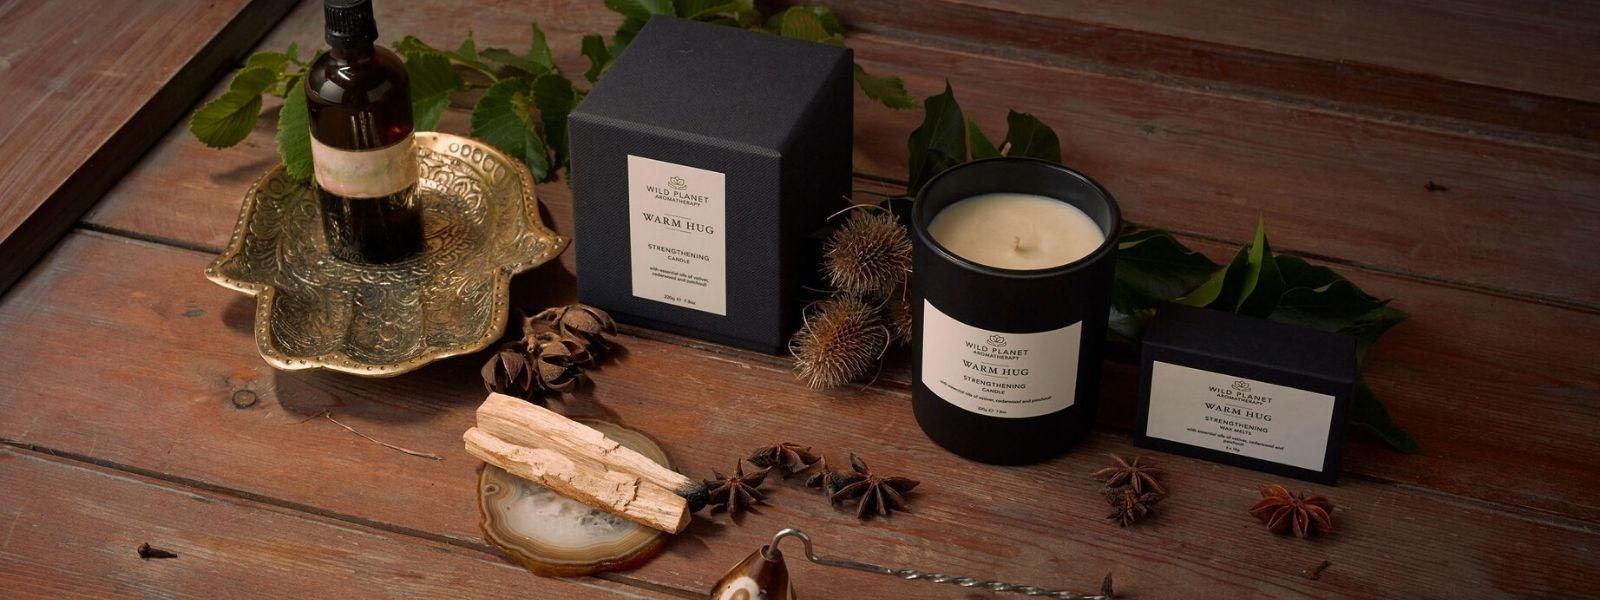 Warm Hug Home Fragrance Collection by Wild Planet Aromatherapy